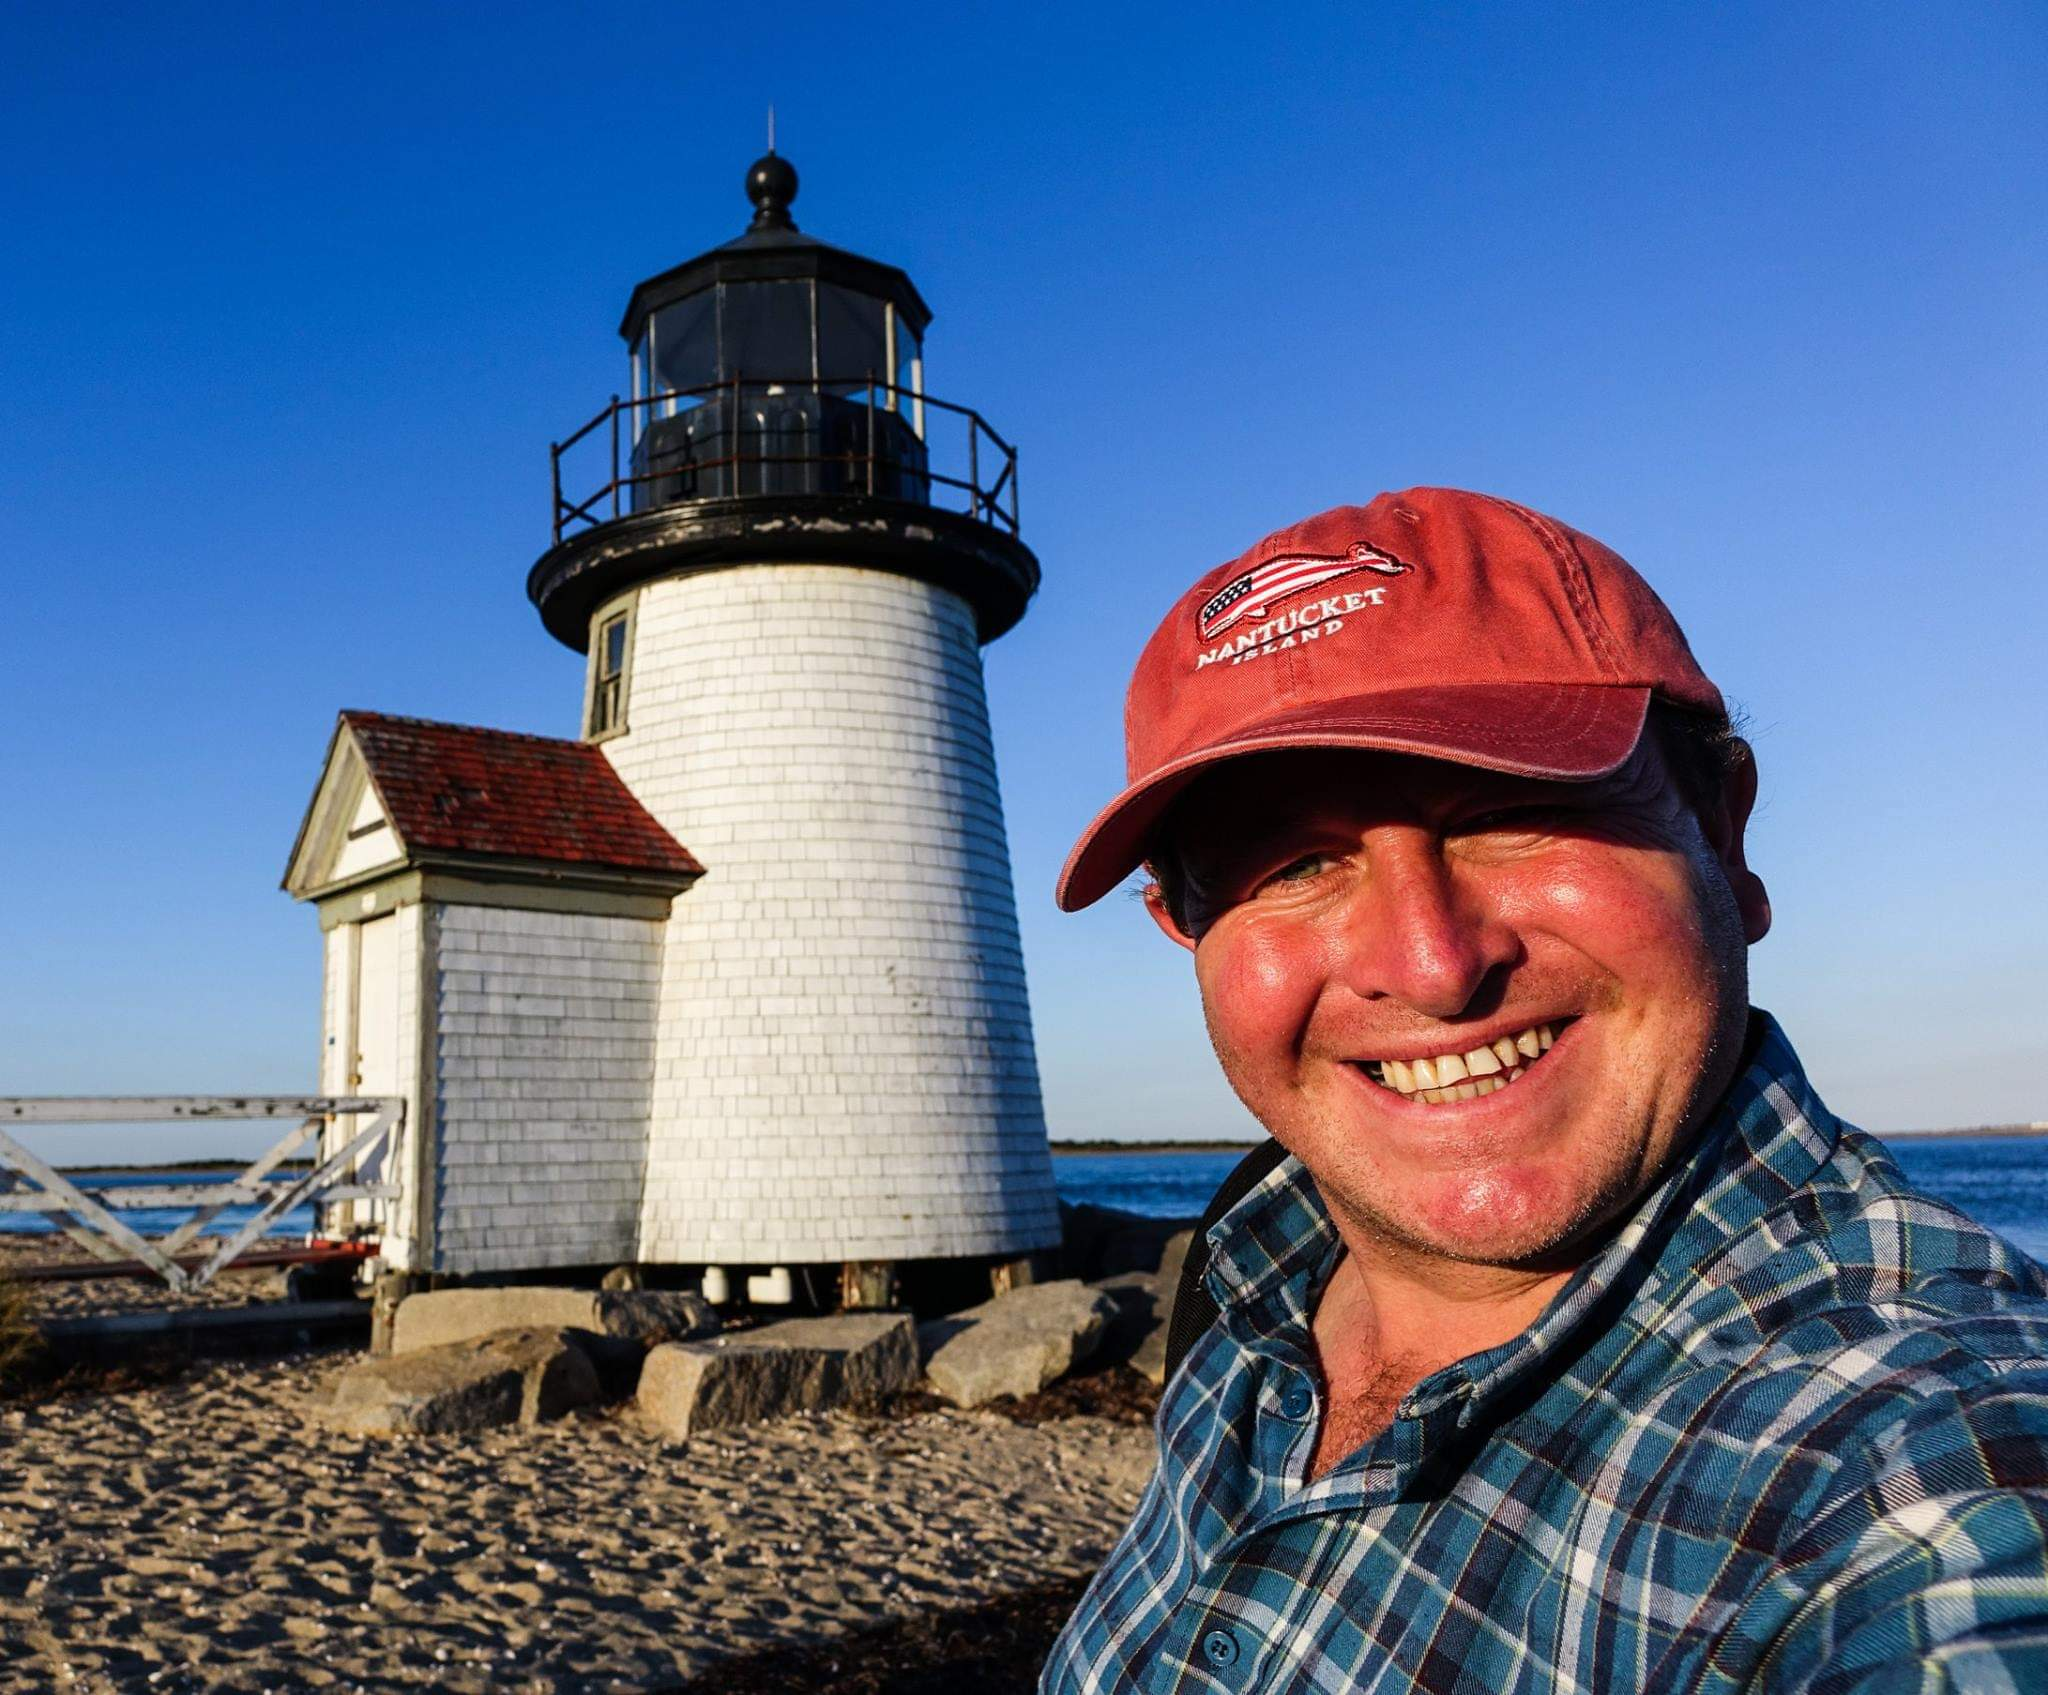 Nantucket, USA. Sunset at the cute Brant Point Lighthouse